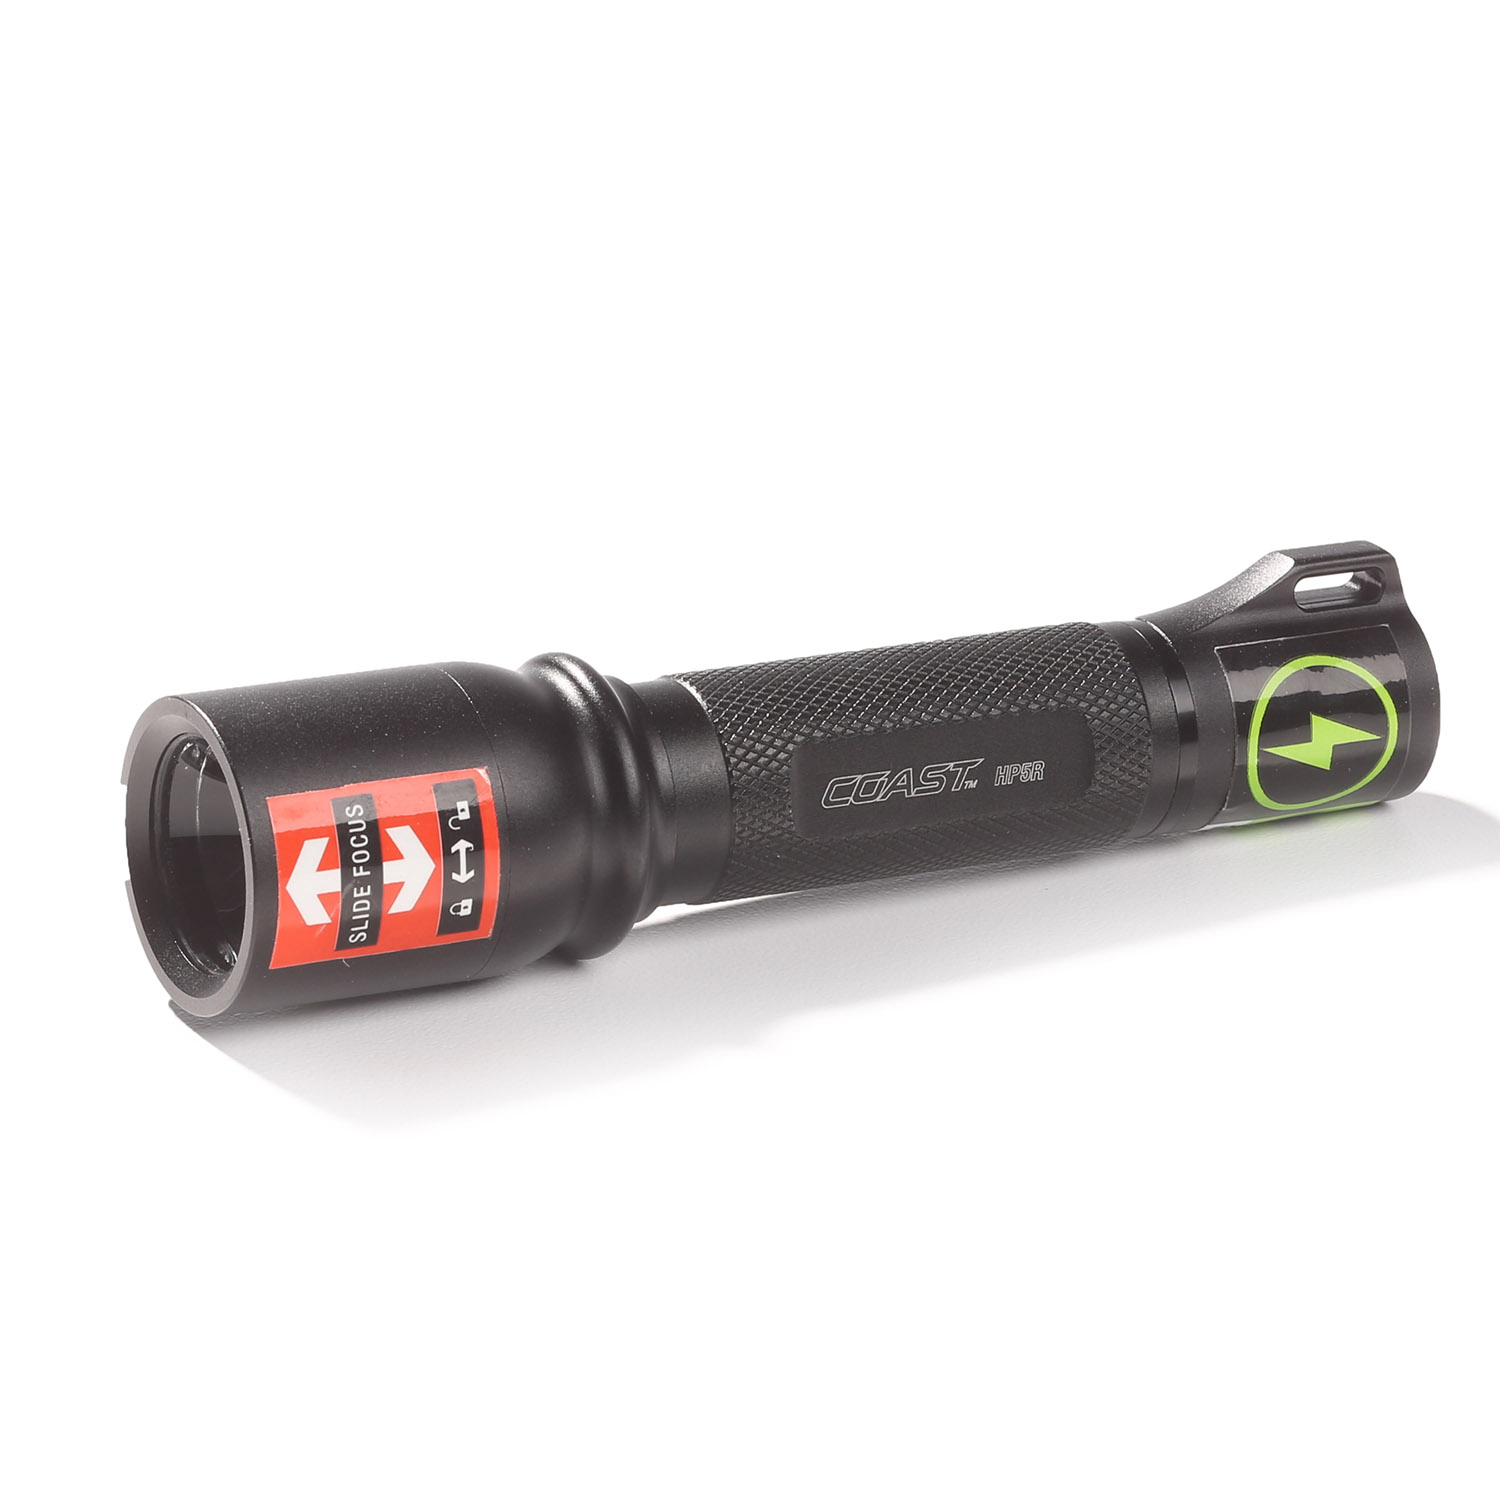 Coast HP5R Rechargeable Flashlight